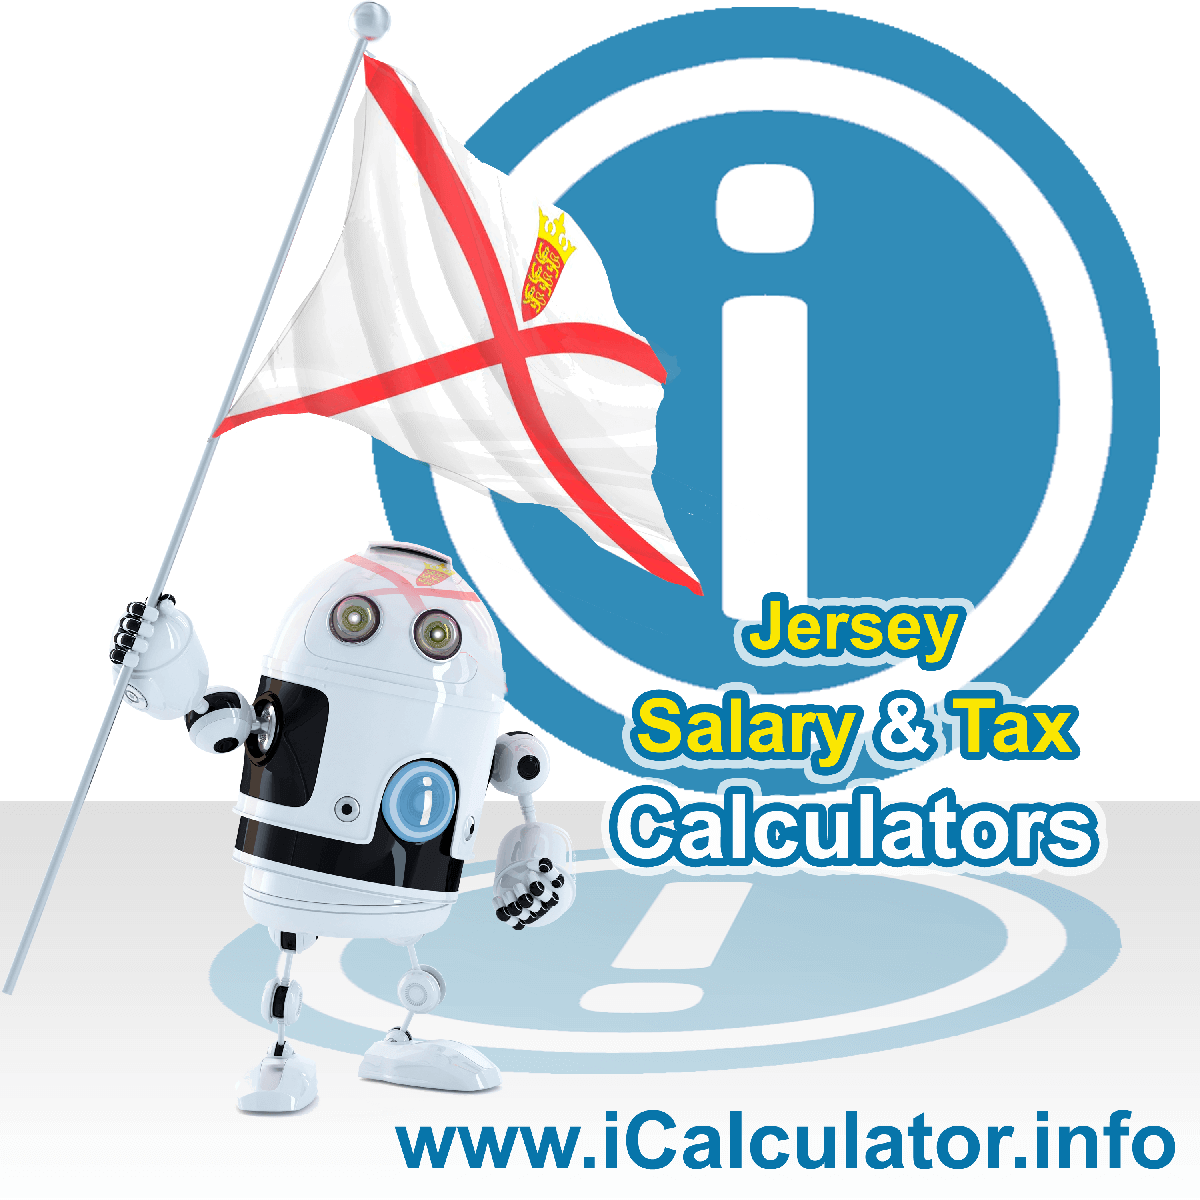 Jersey Tax Calculator. This image shows the Jersey flag and information relating to the tax formula for the Jersey Salary Calculator